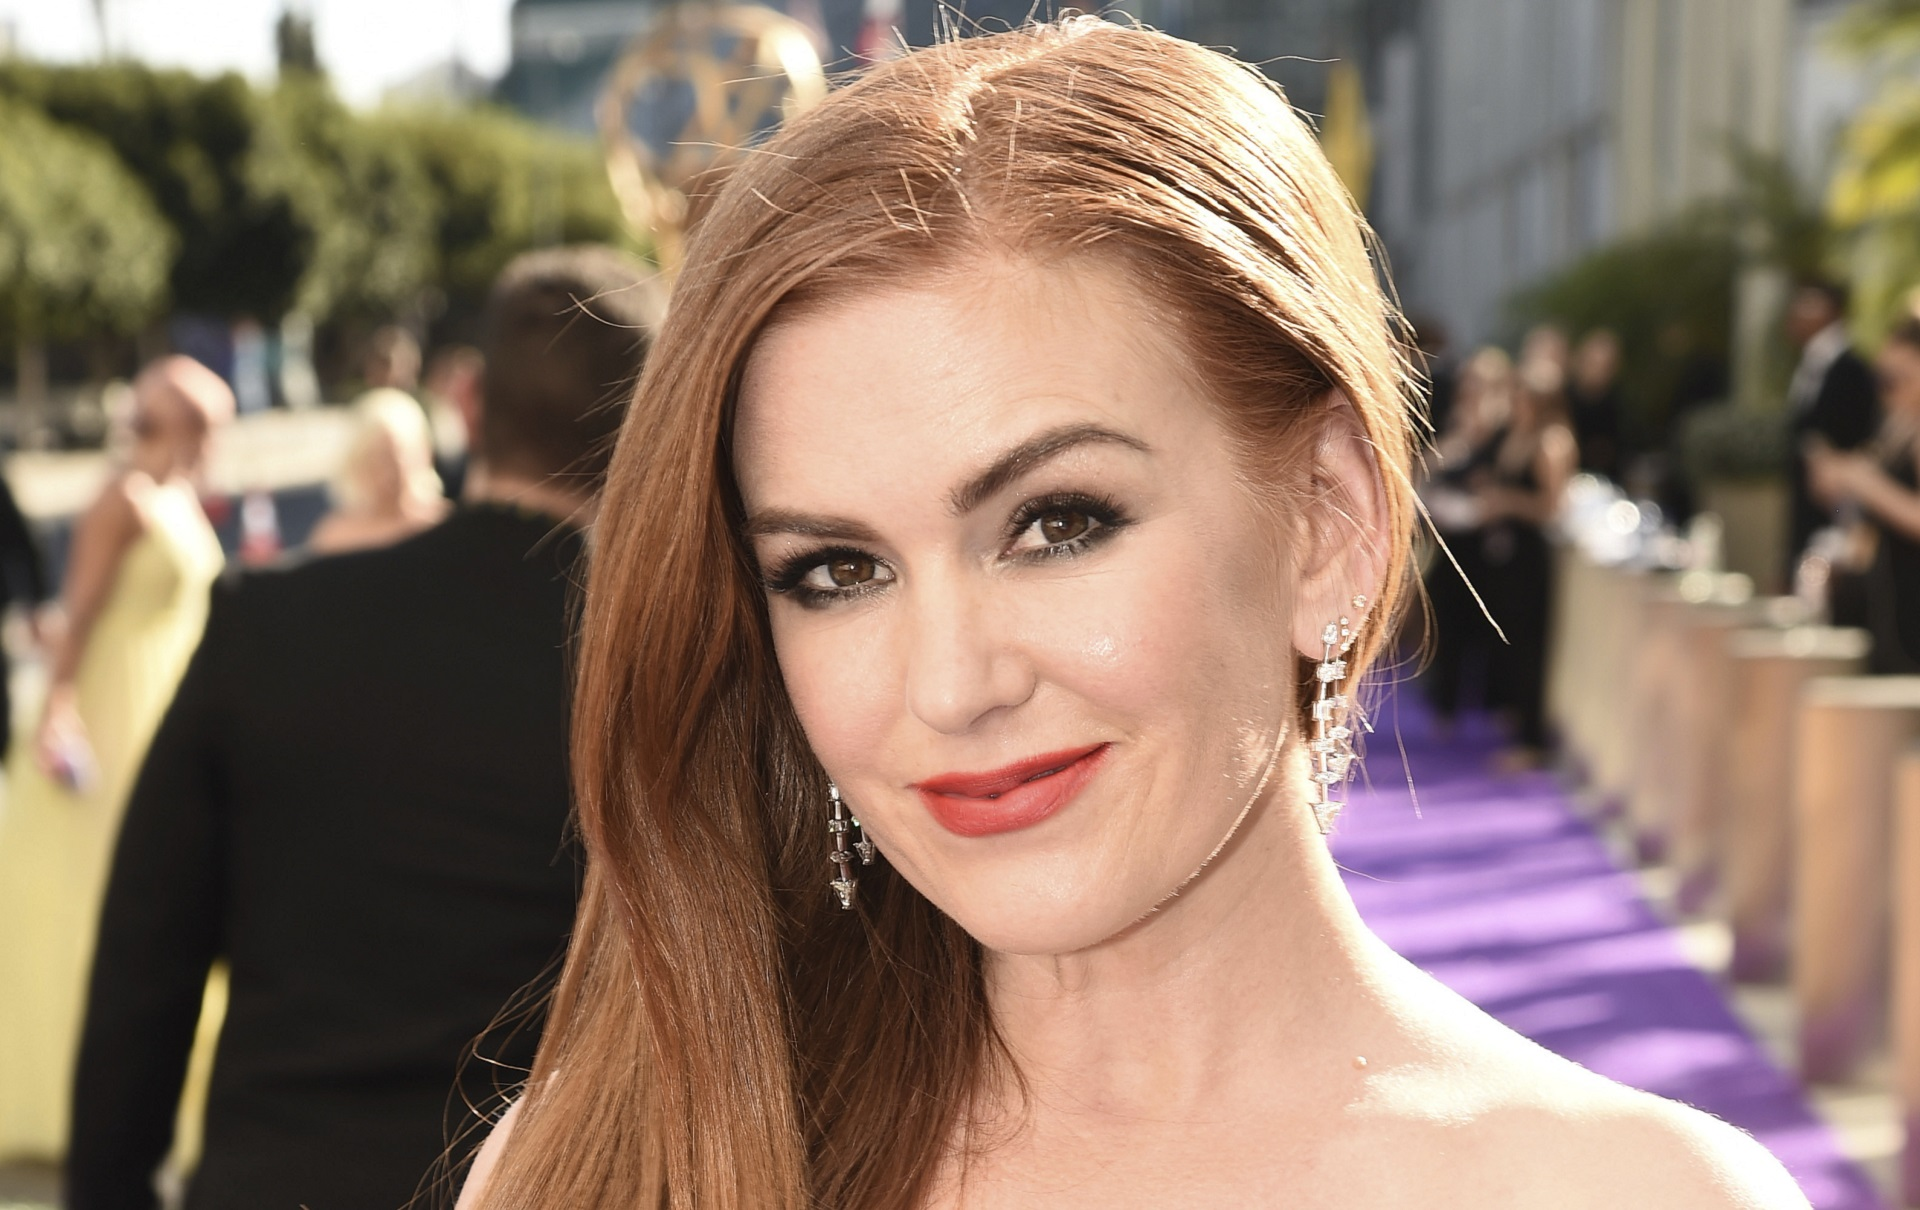 Isla Fisher: Aussie actress with a surprising birthplace, religious conversion and Hollywood success